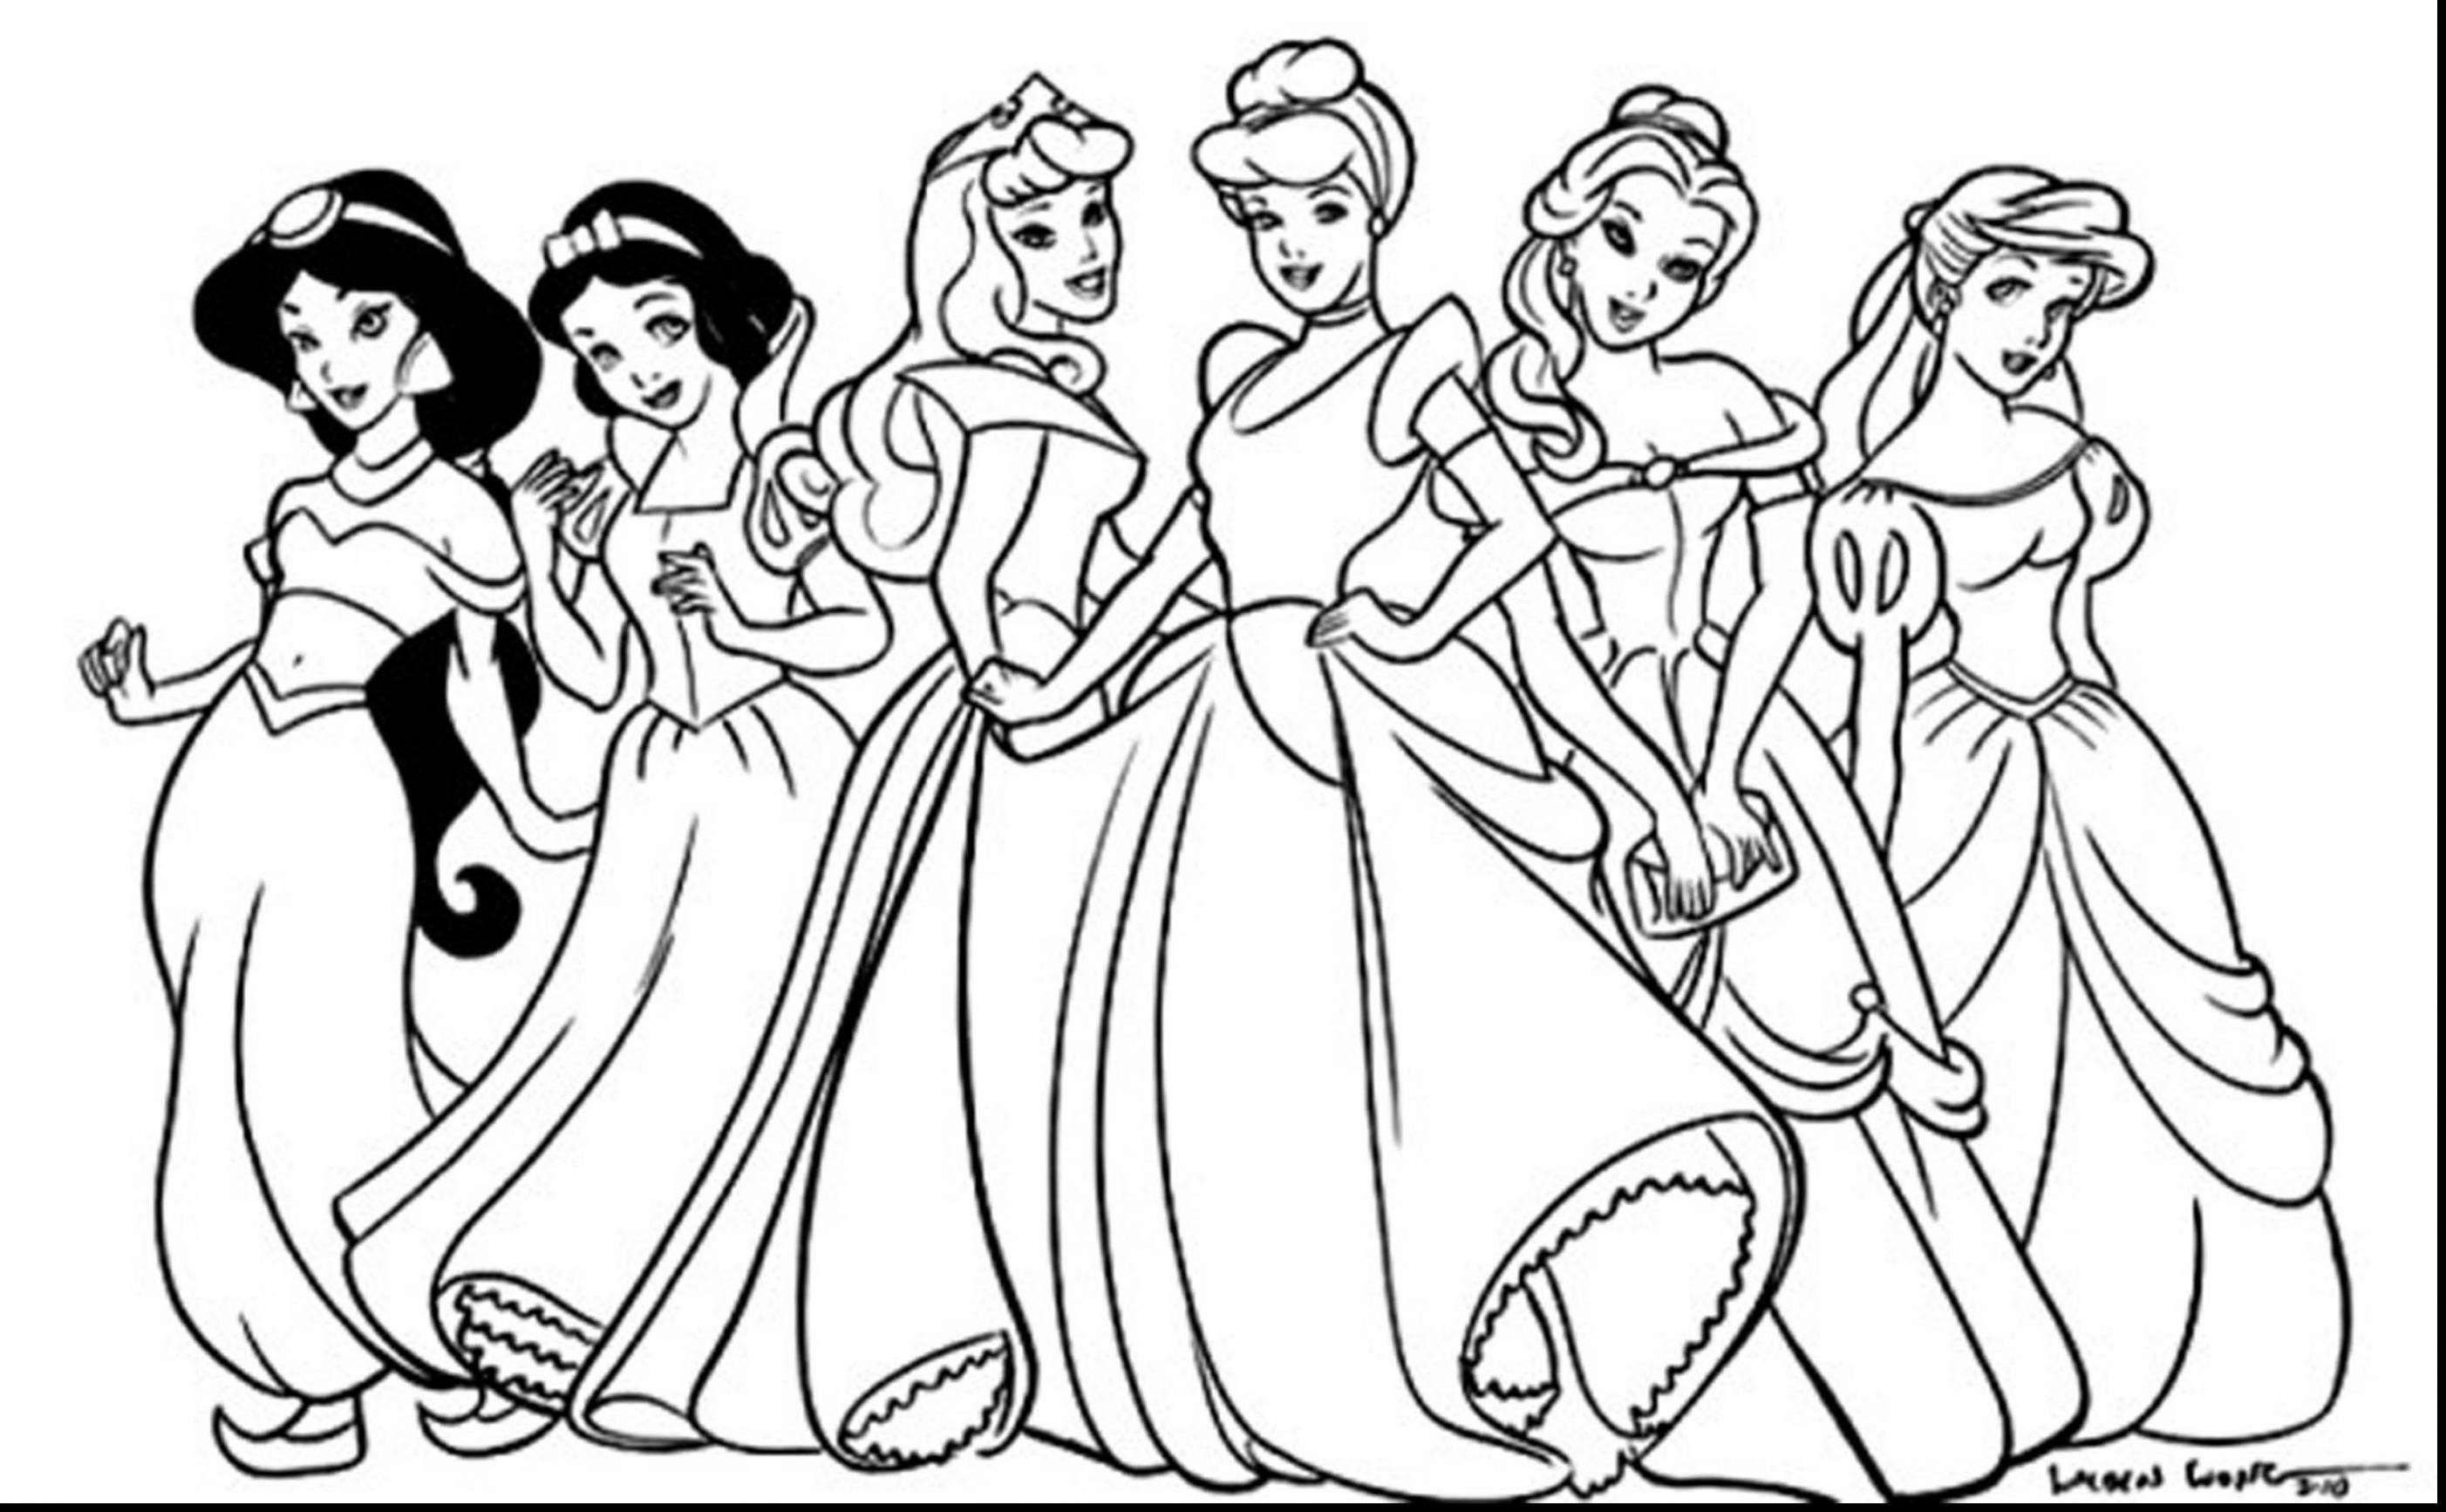 Disney Belle Coloring Pages Free Coloring Pages Allow Kids To Accompany Their Favor Disney Princess Coloring Pages Princess Coloring Pages Princess Coloring